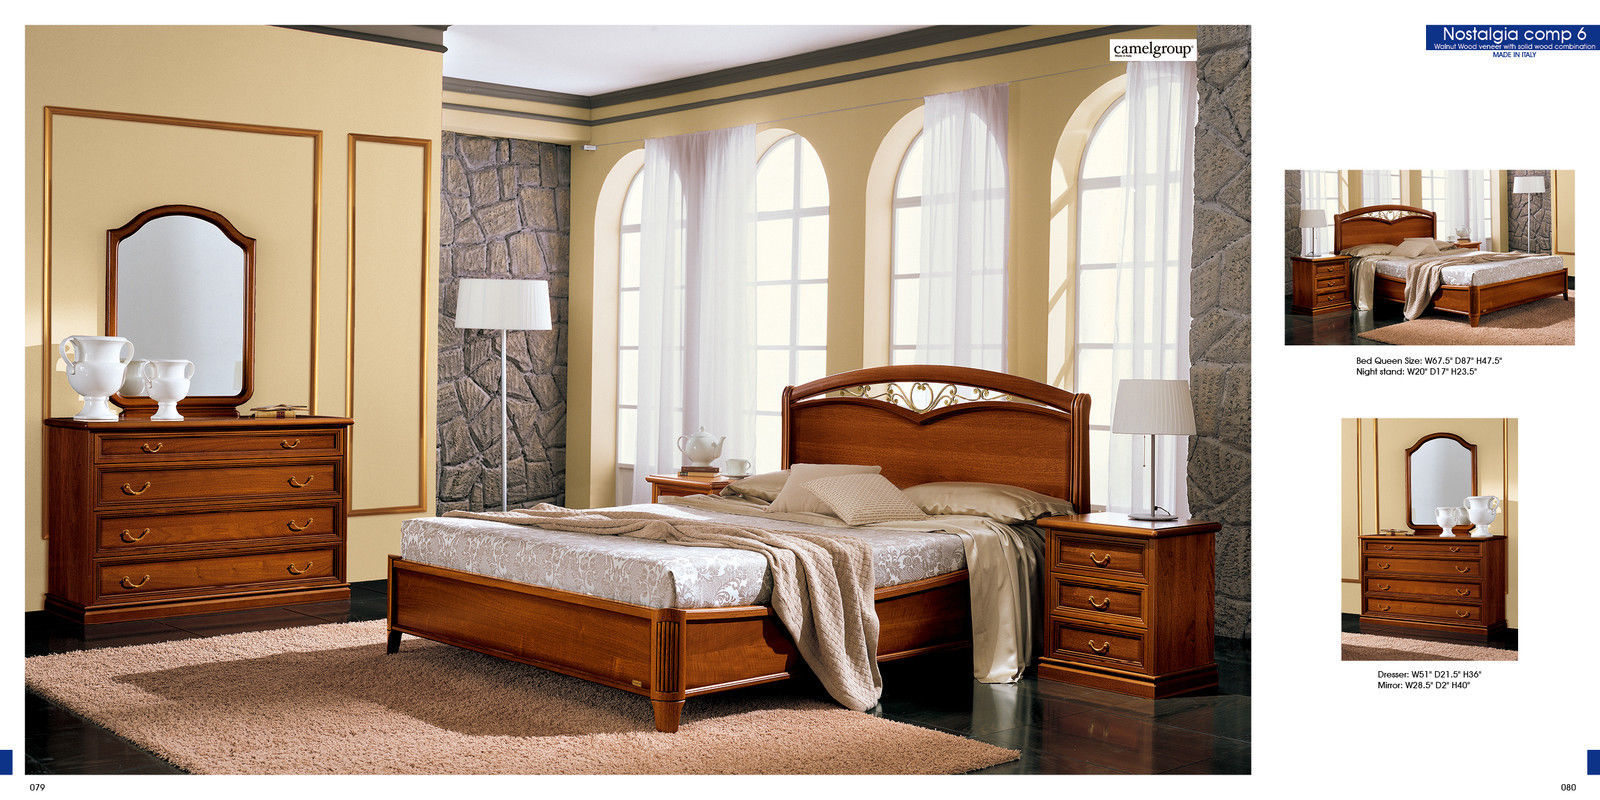 Camel® NOSTALGIA Bedroom Set Classic Unique Design Made In ITALY